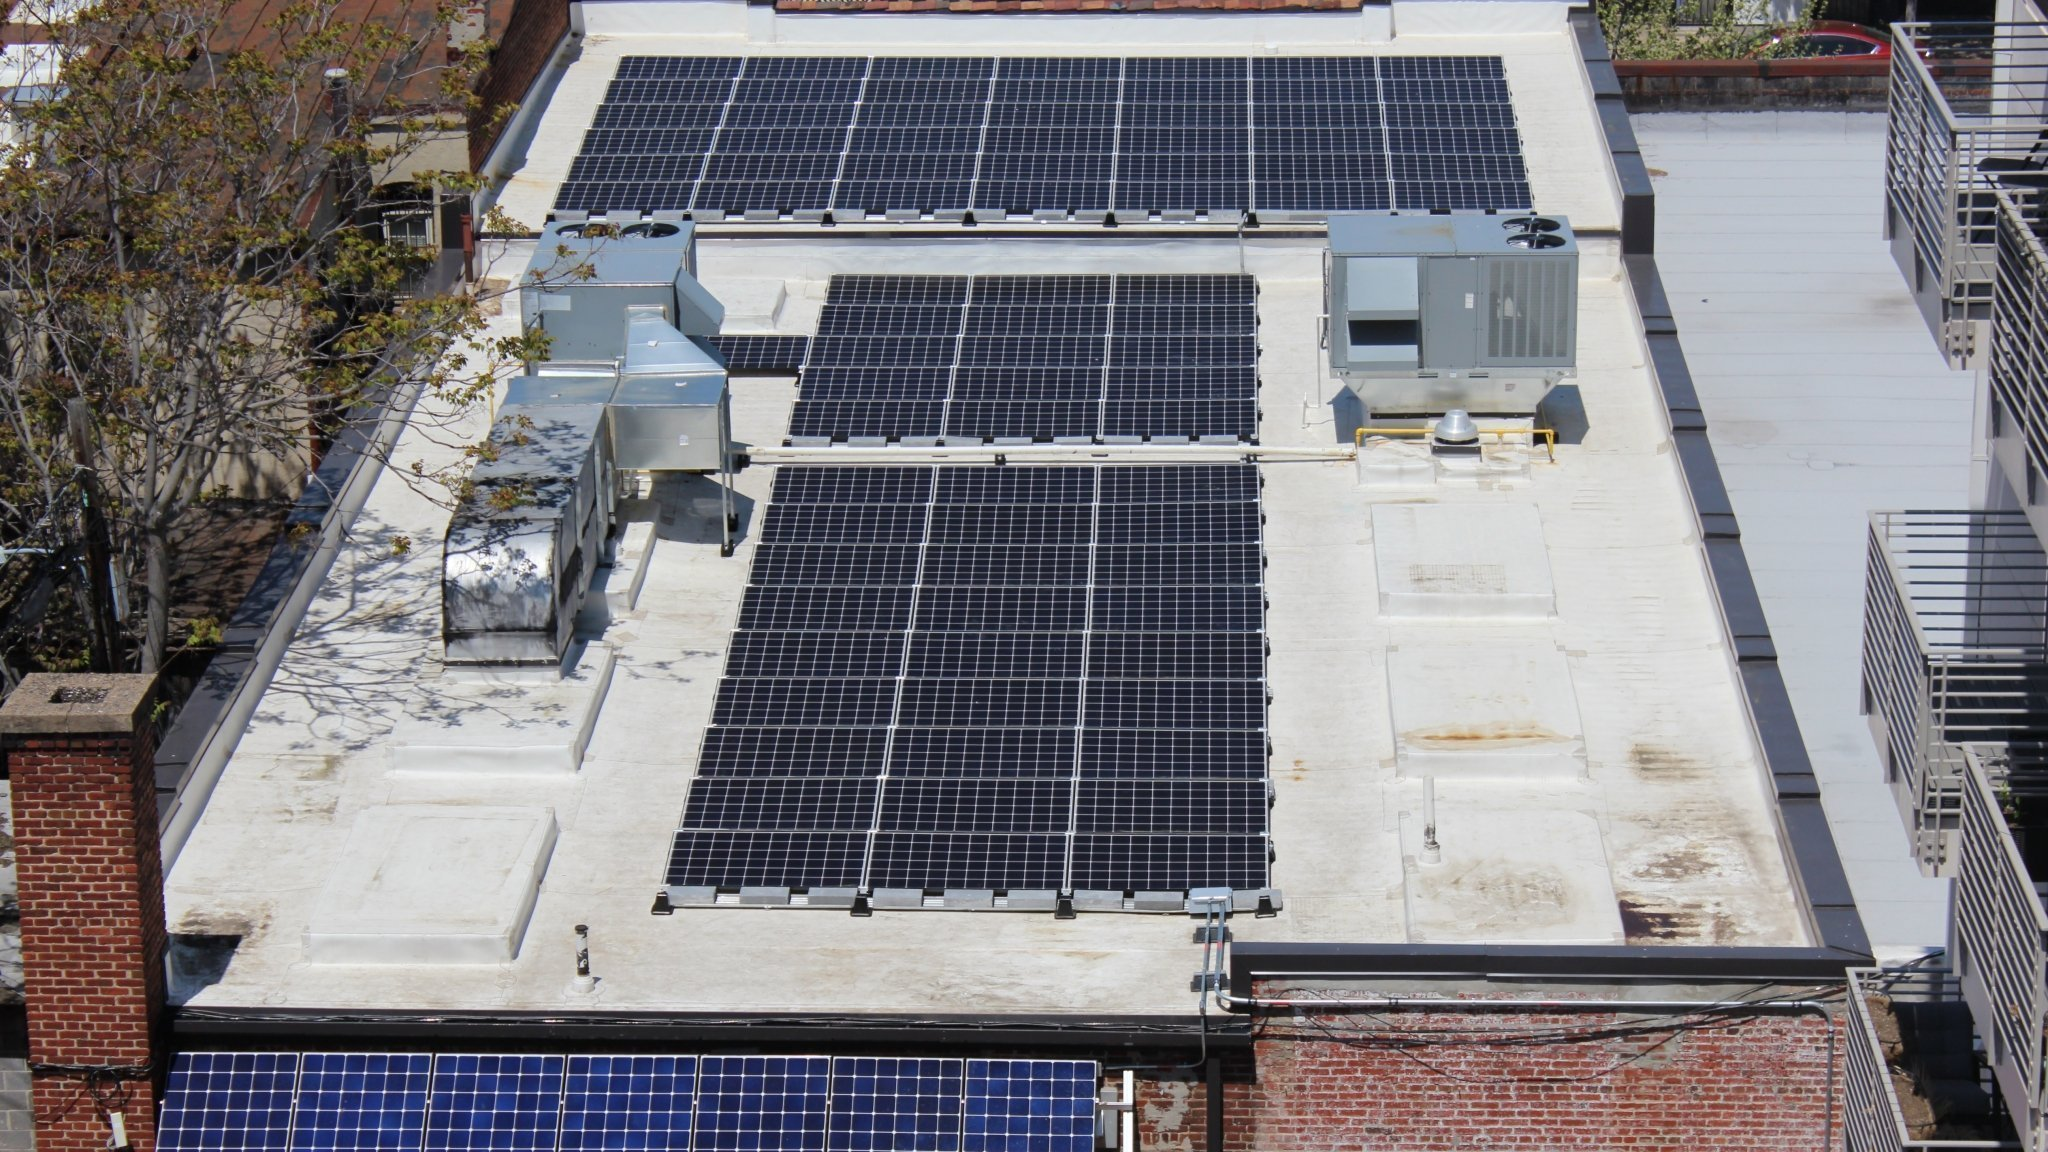 Commercial solar panel system in Washington D.C.